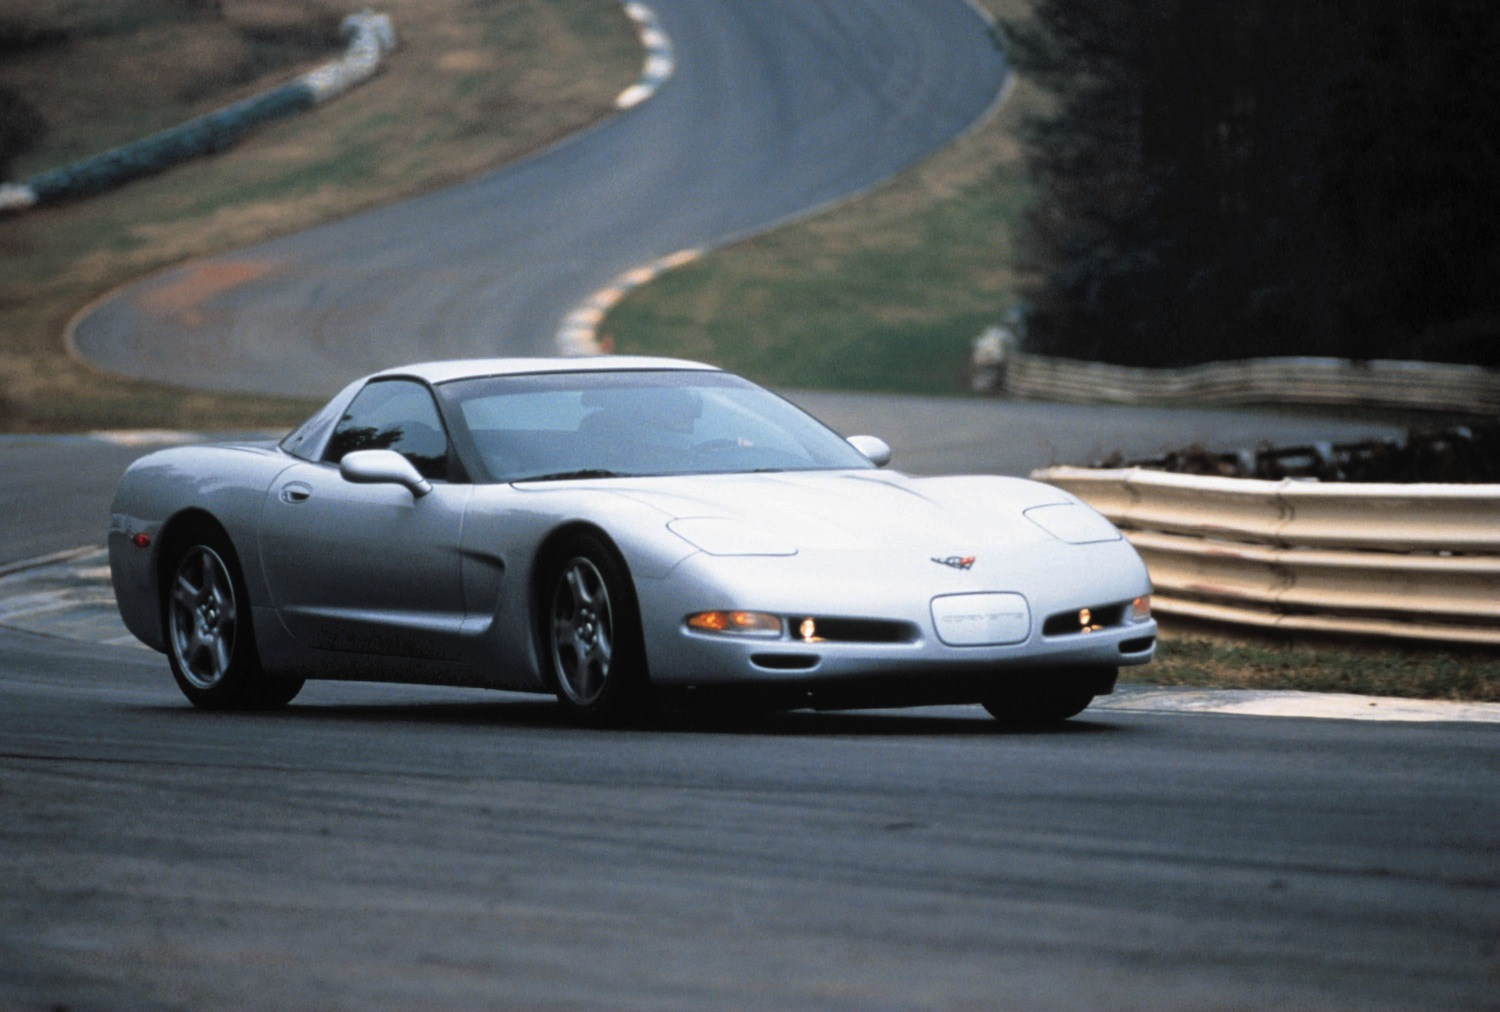 1999 Chevrolet Corvette coupe. 99-07COR